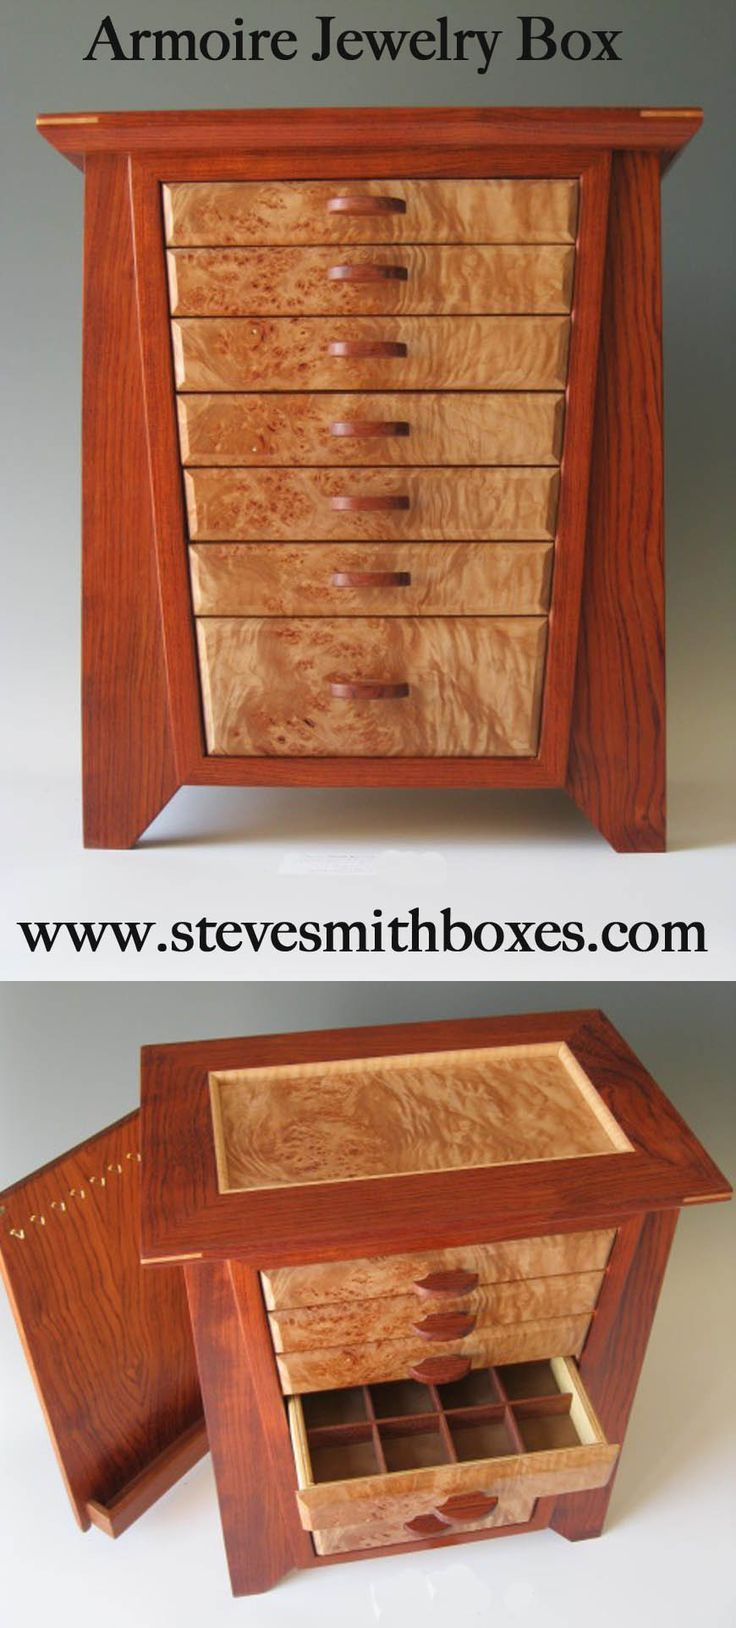 Wood jewelry box handcrafted woodworking projects plans for Handmade wooden jewelry box